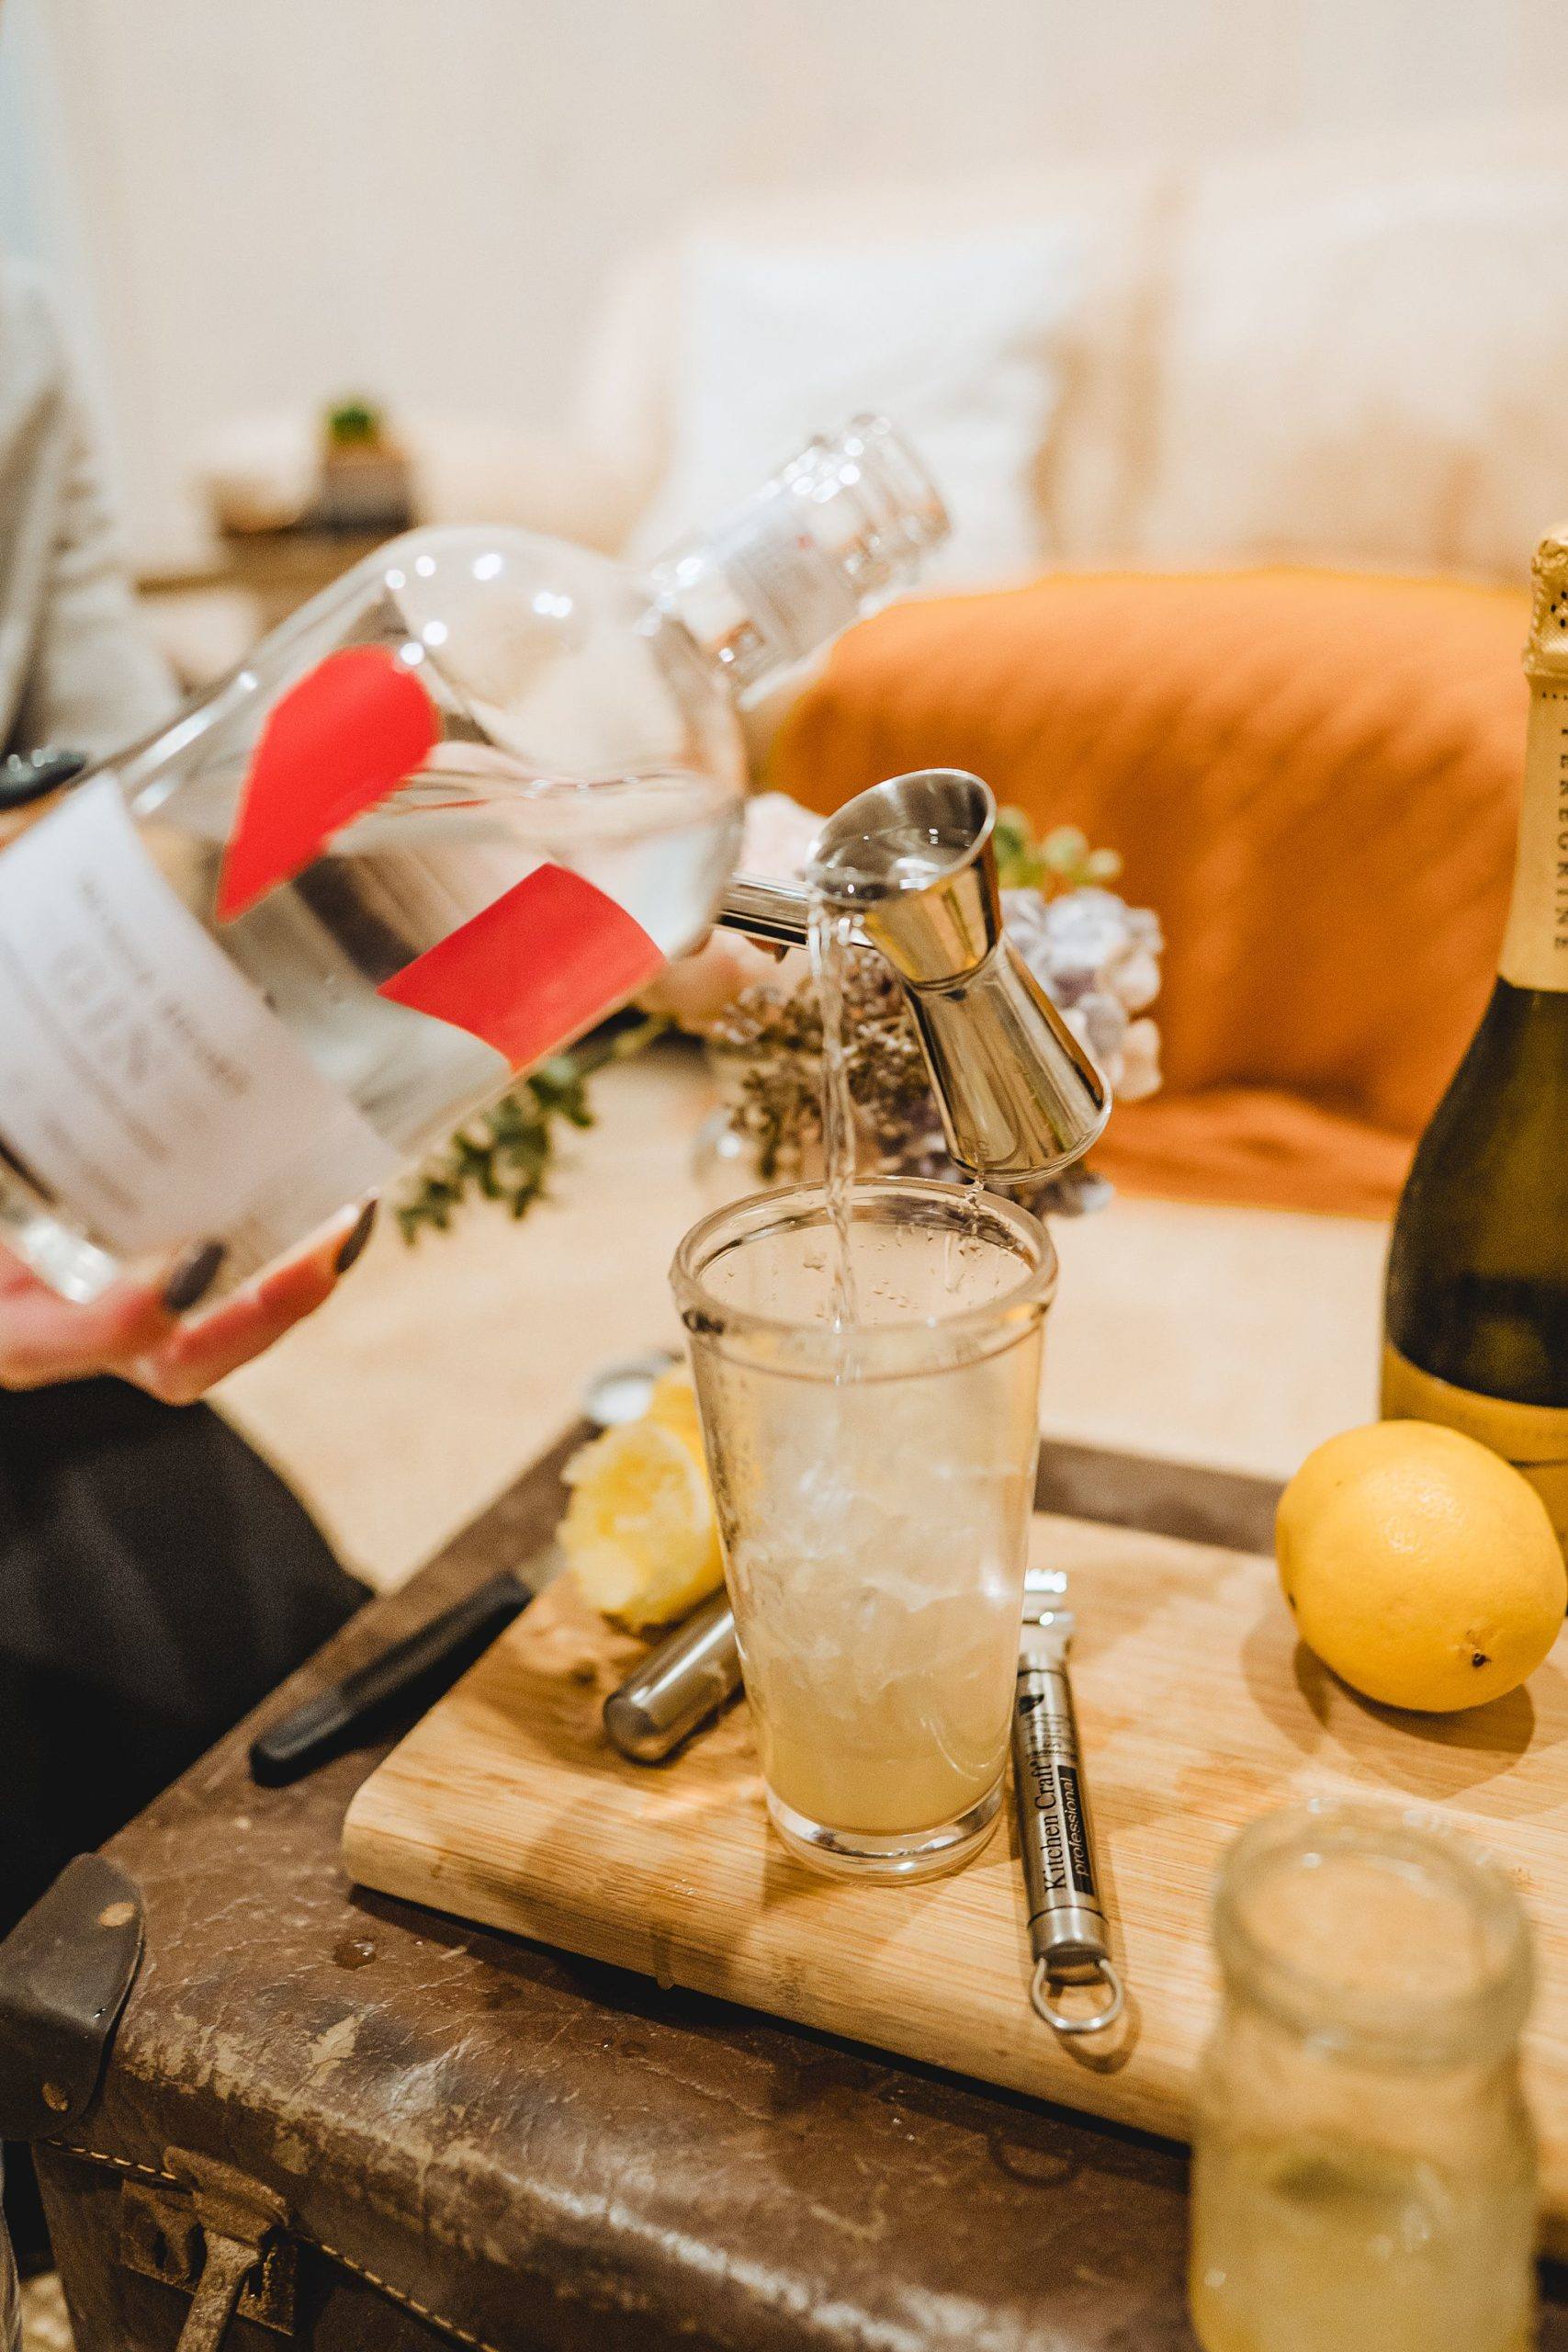 Adding gin to cocktail